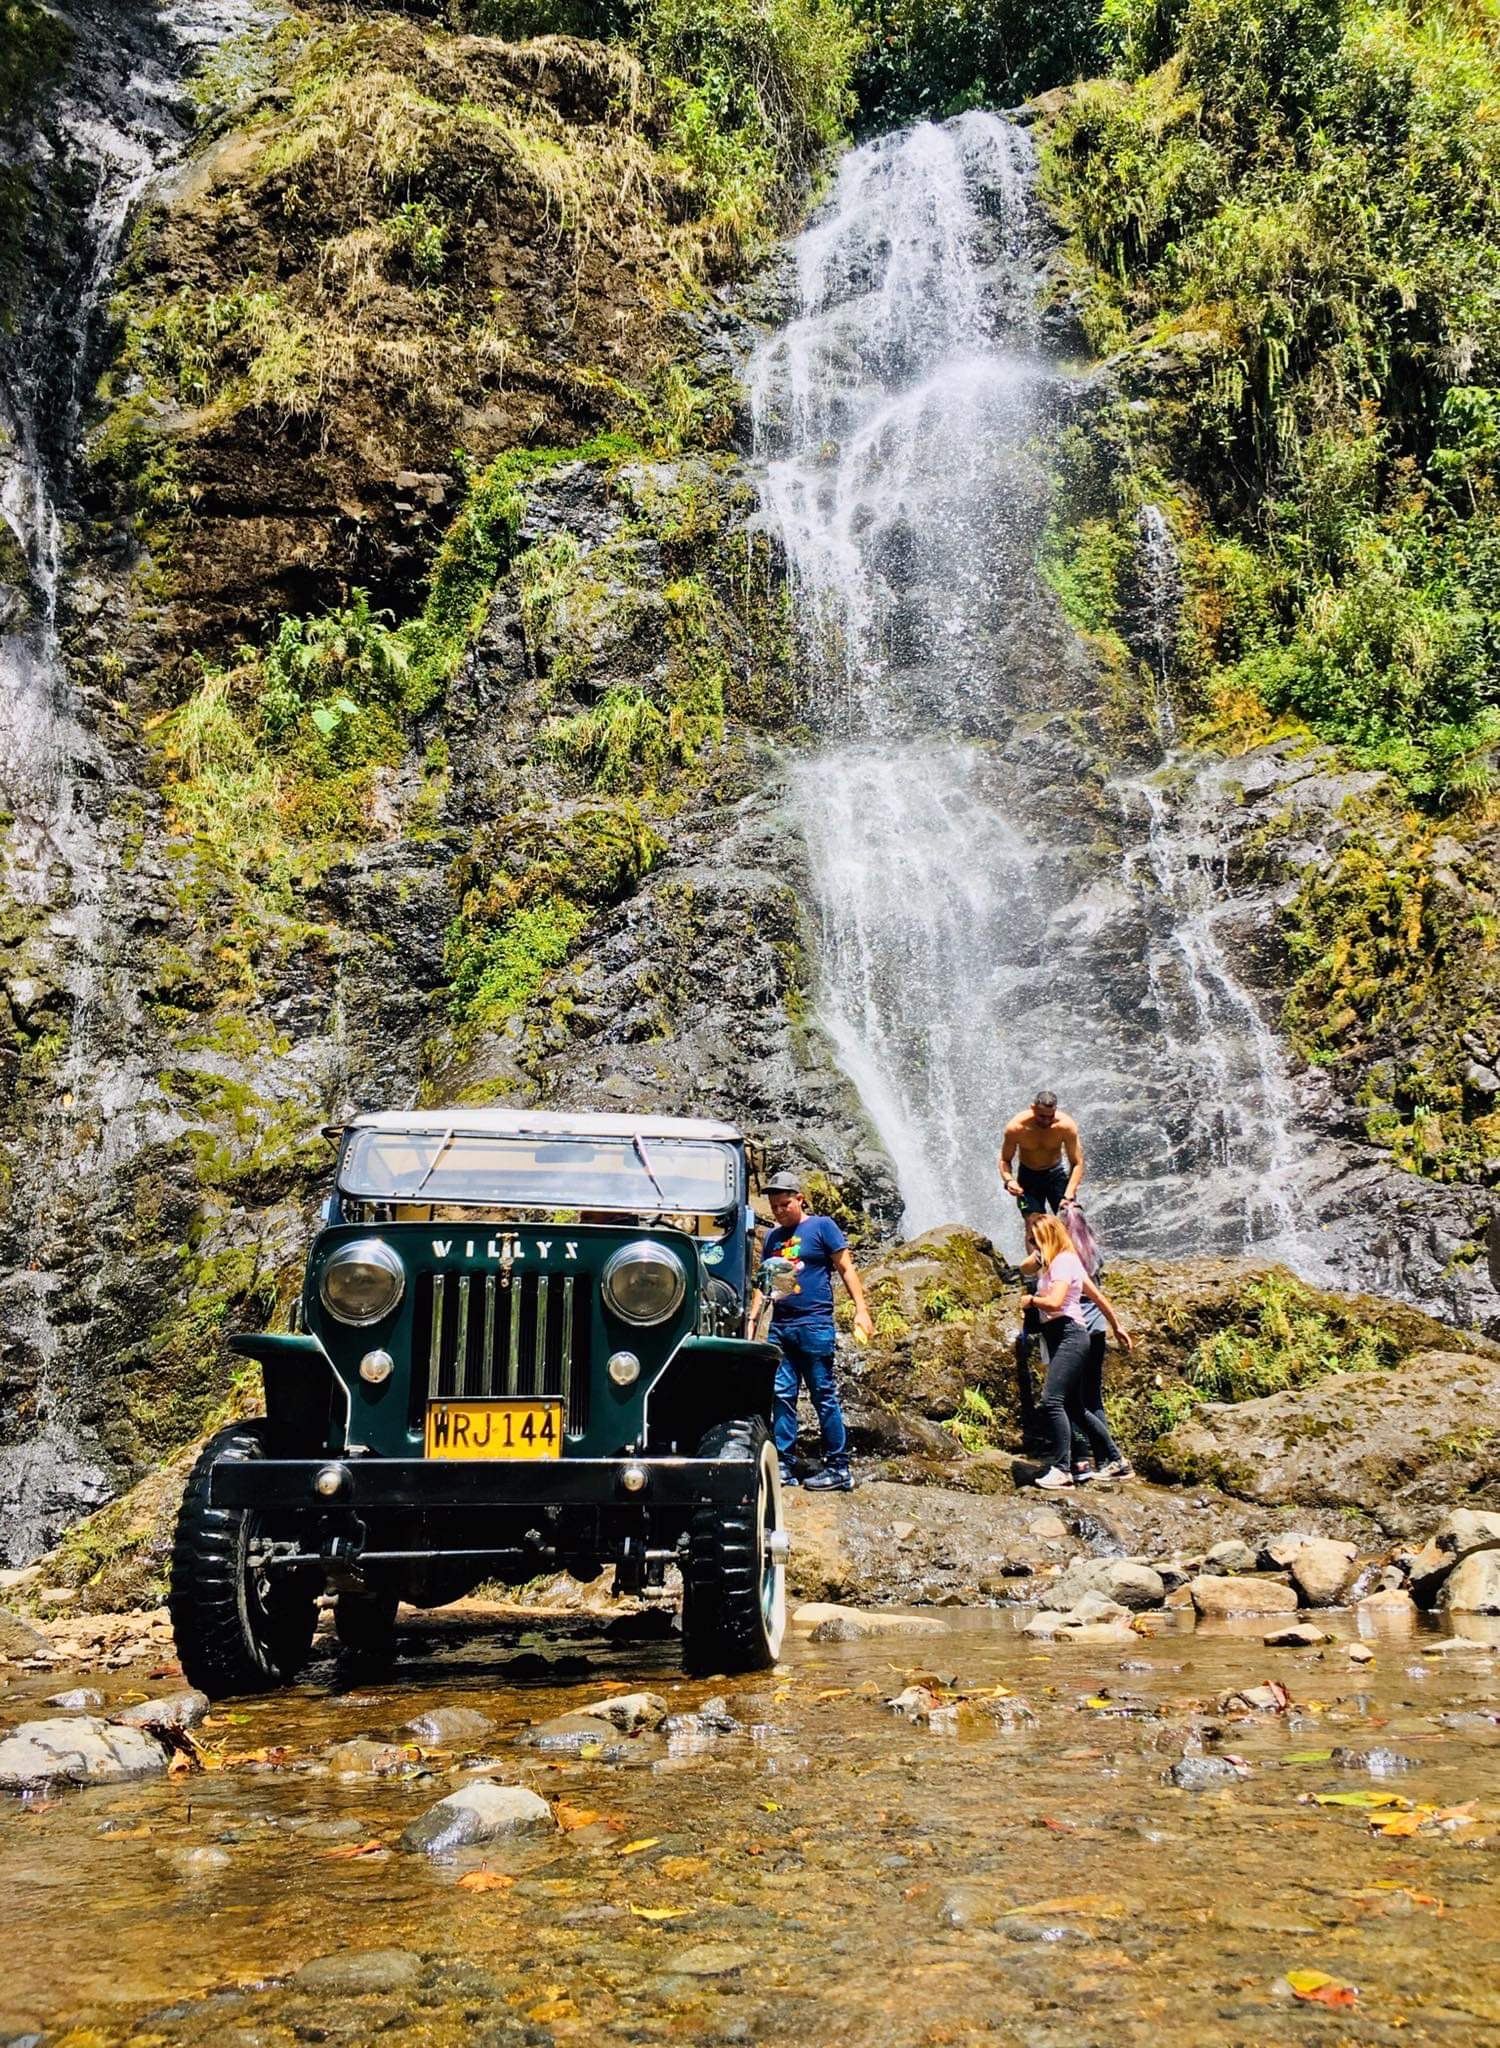 Come to Finca Mariposa for Jardin's best Jeep Tours in a 1954 Classic Willys.